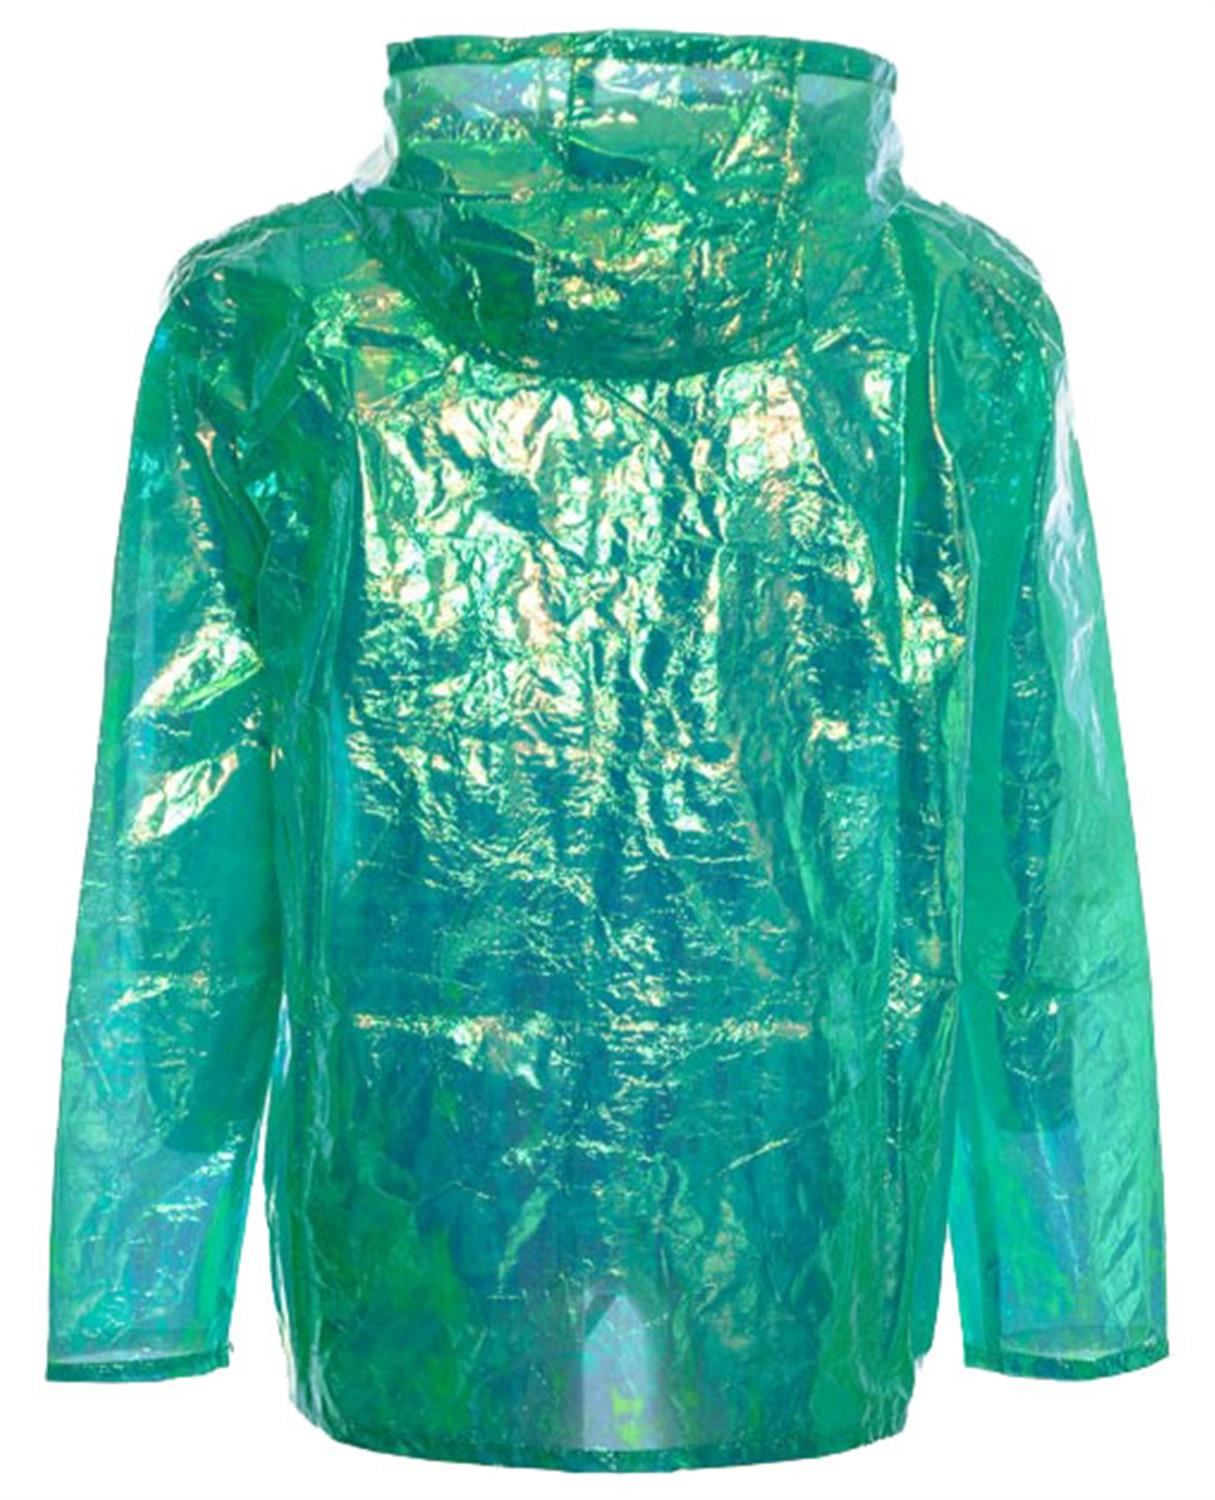 Womens-Waterproof-Holographic-Zipped-Neon-Festival-Mac-Jacket-Parka-Raincoat thumbnail 13